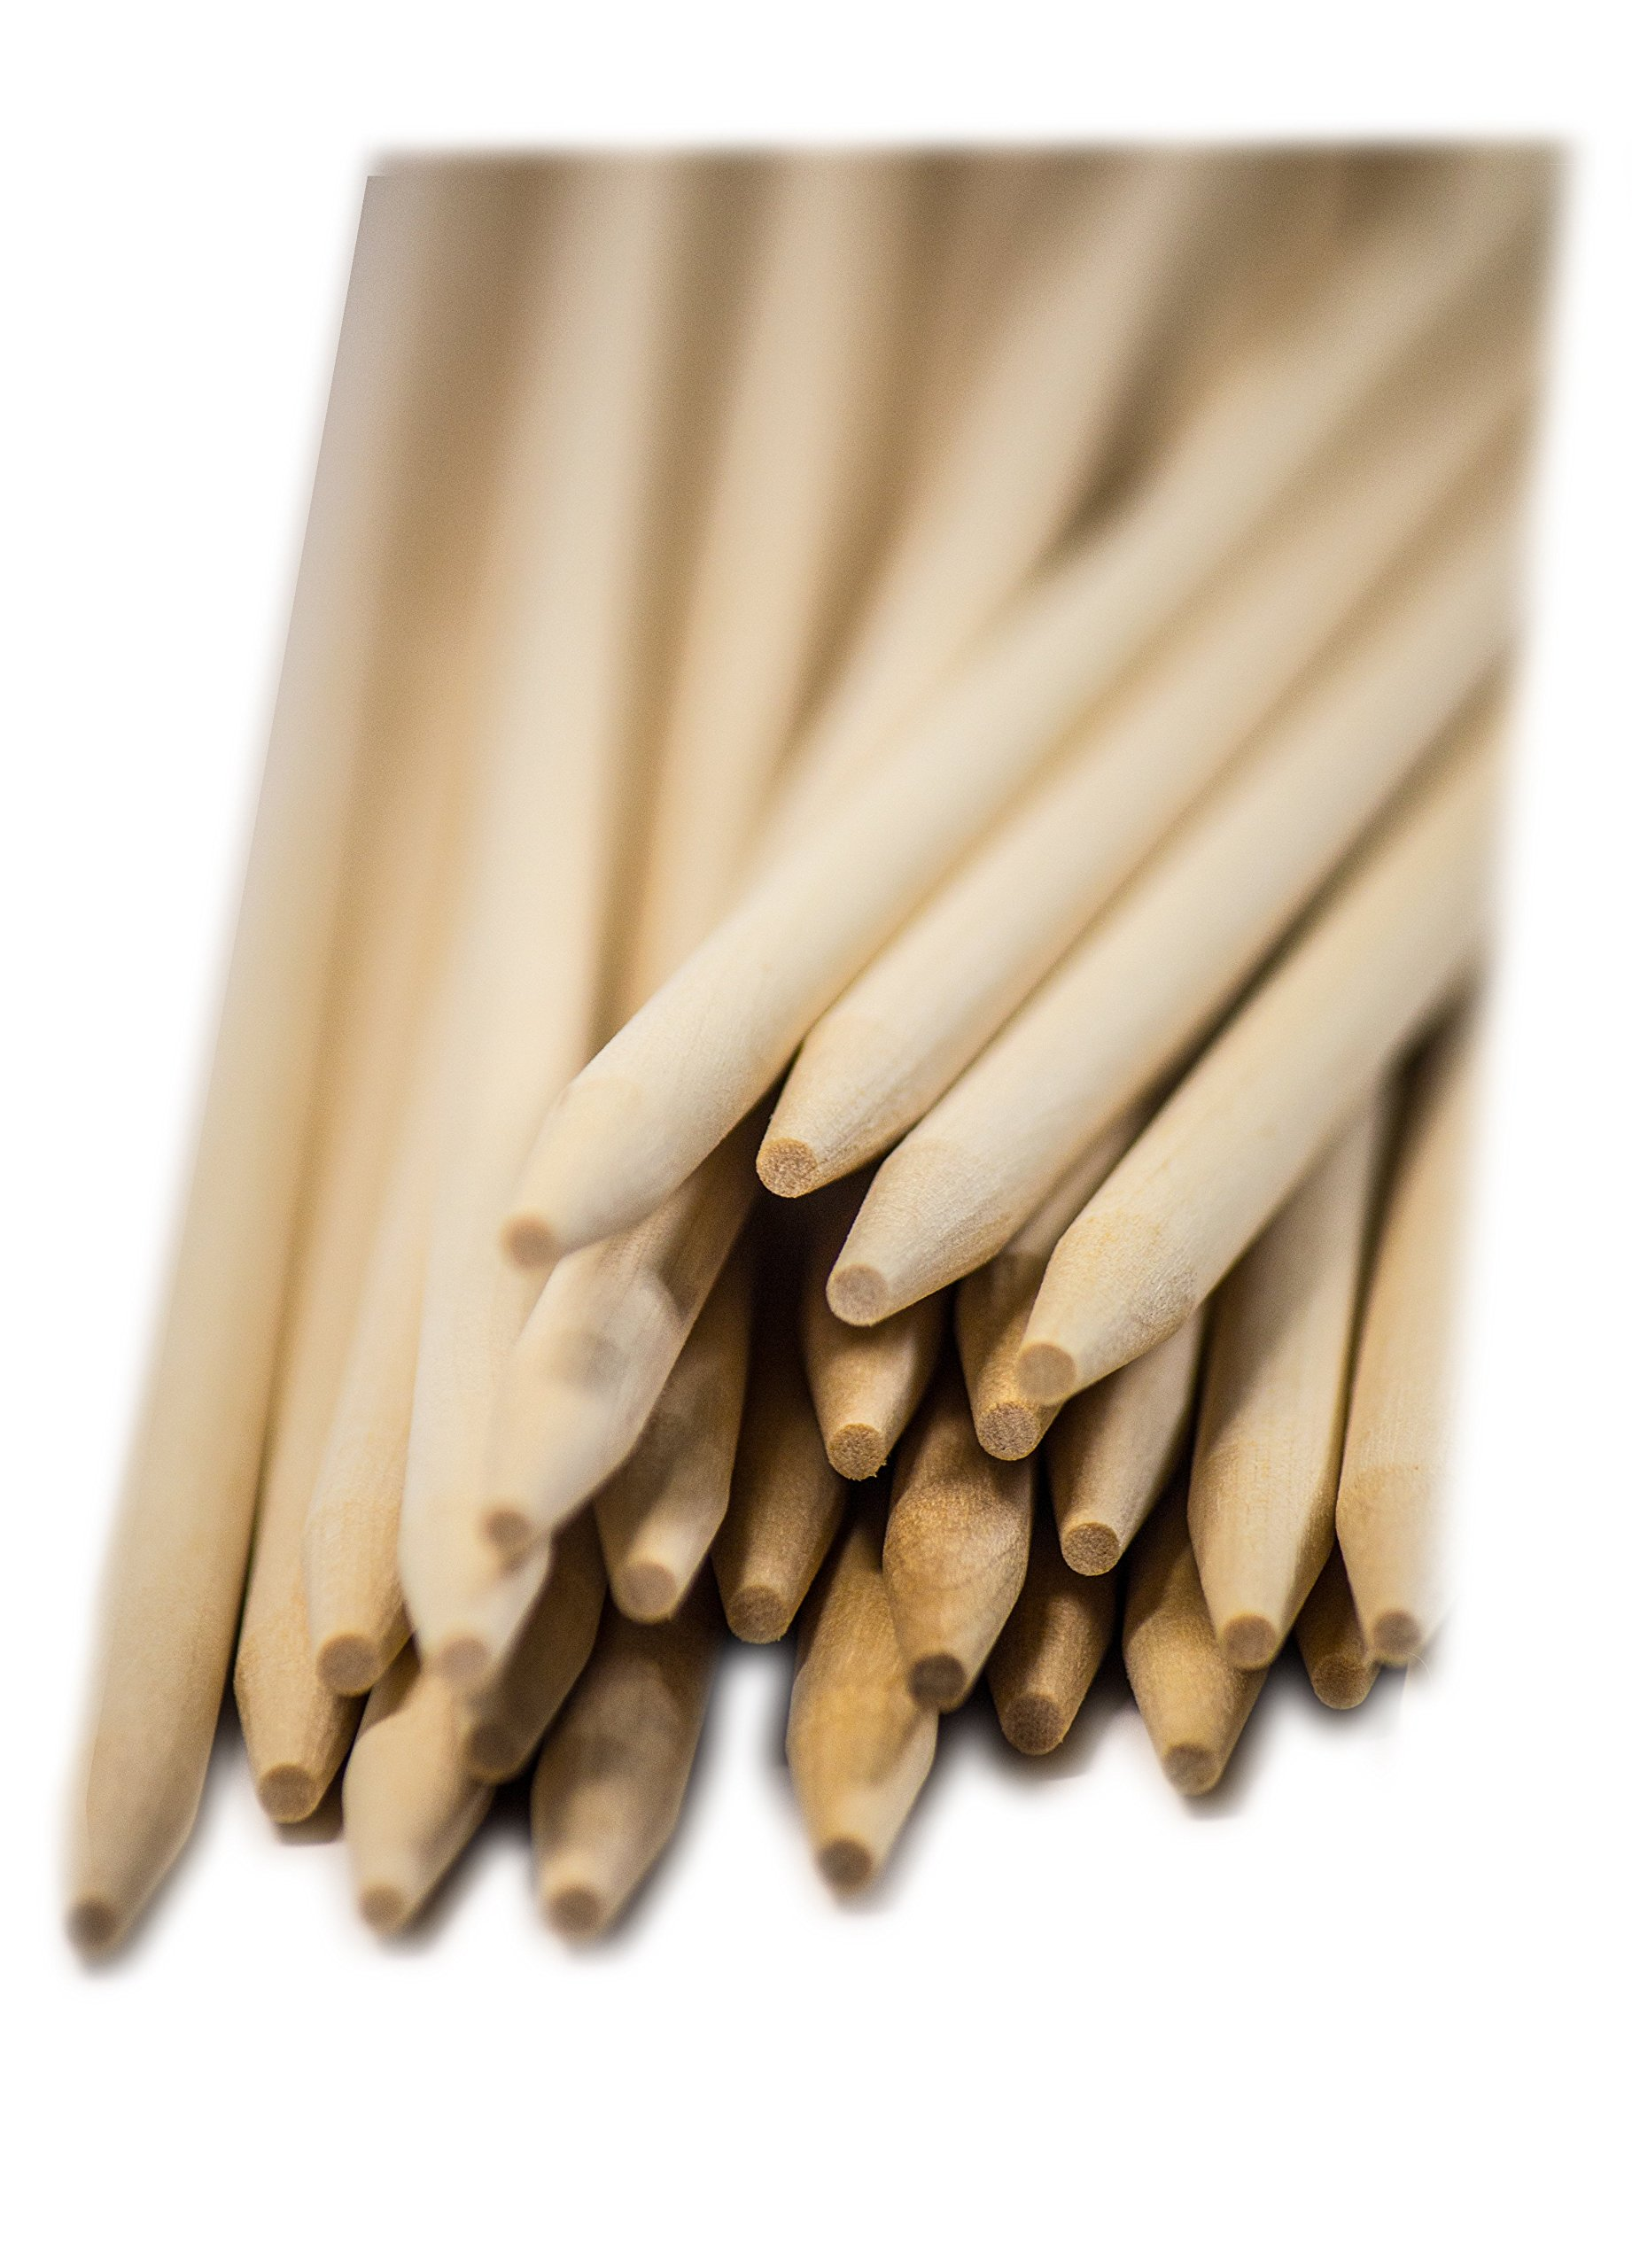 Perfect Stix Wooden Semi Pointed Corn / Concession Skewers Sticks 12'' x 3/16'' ( pack of 5000)